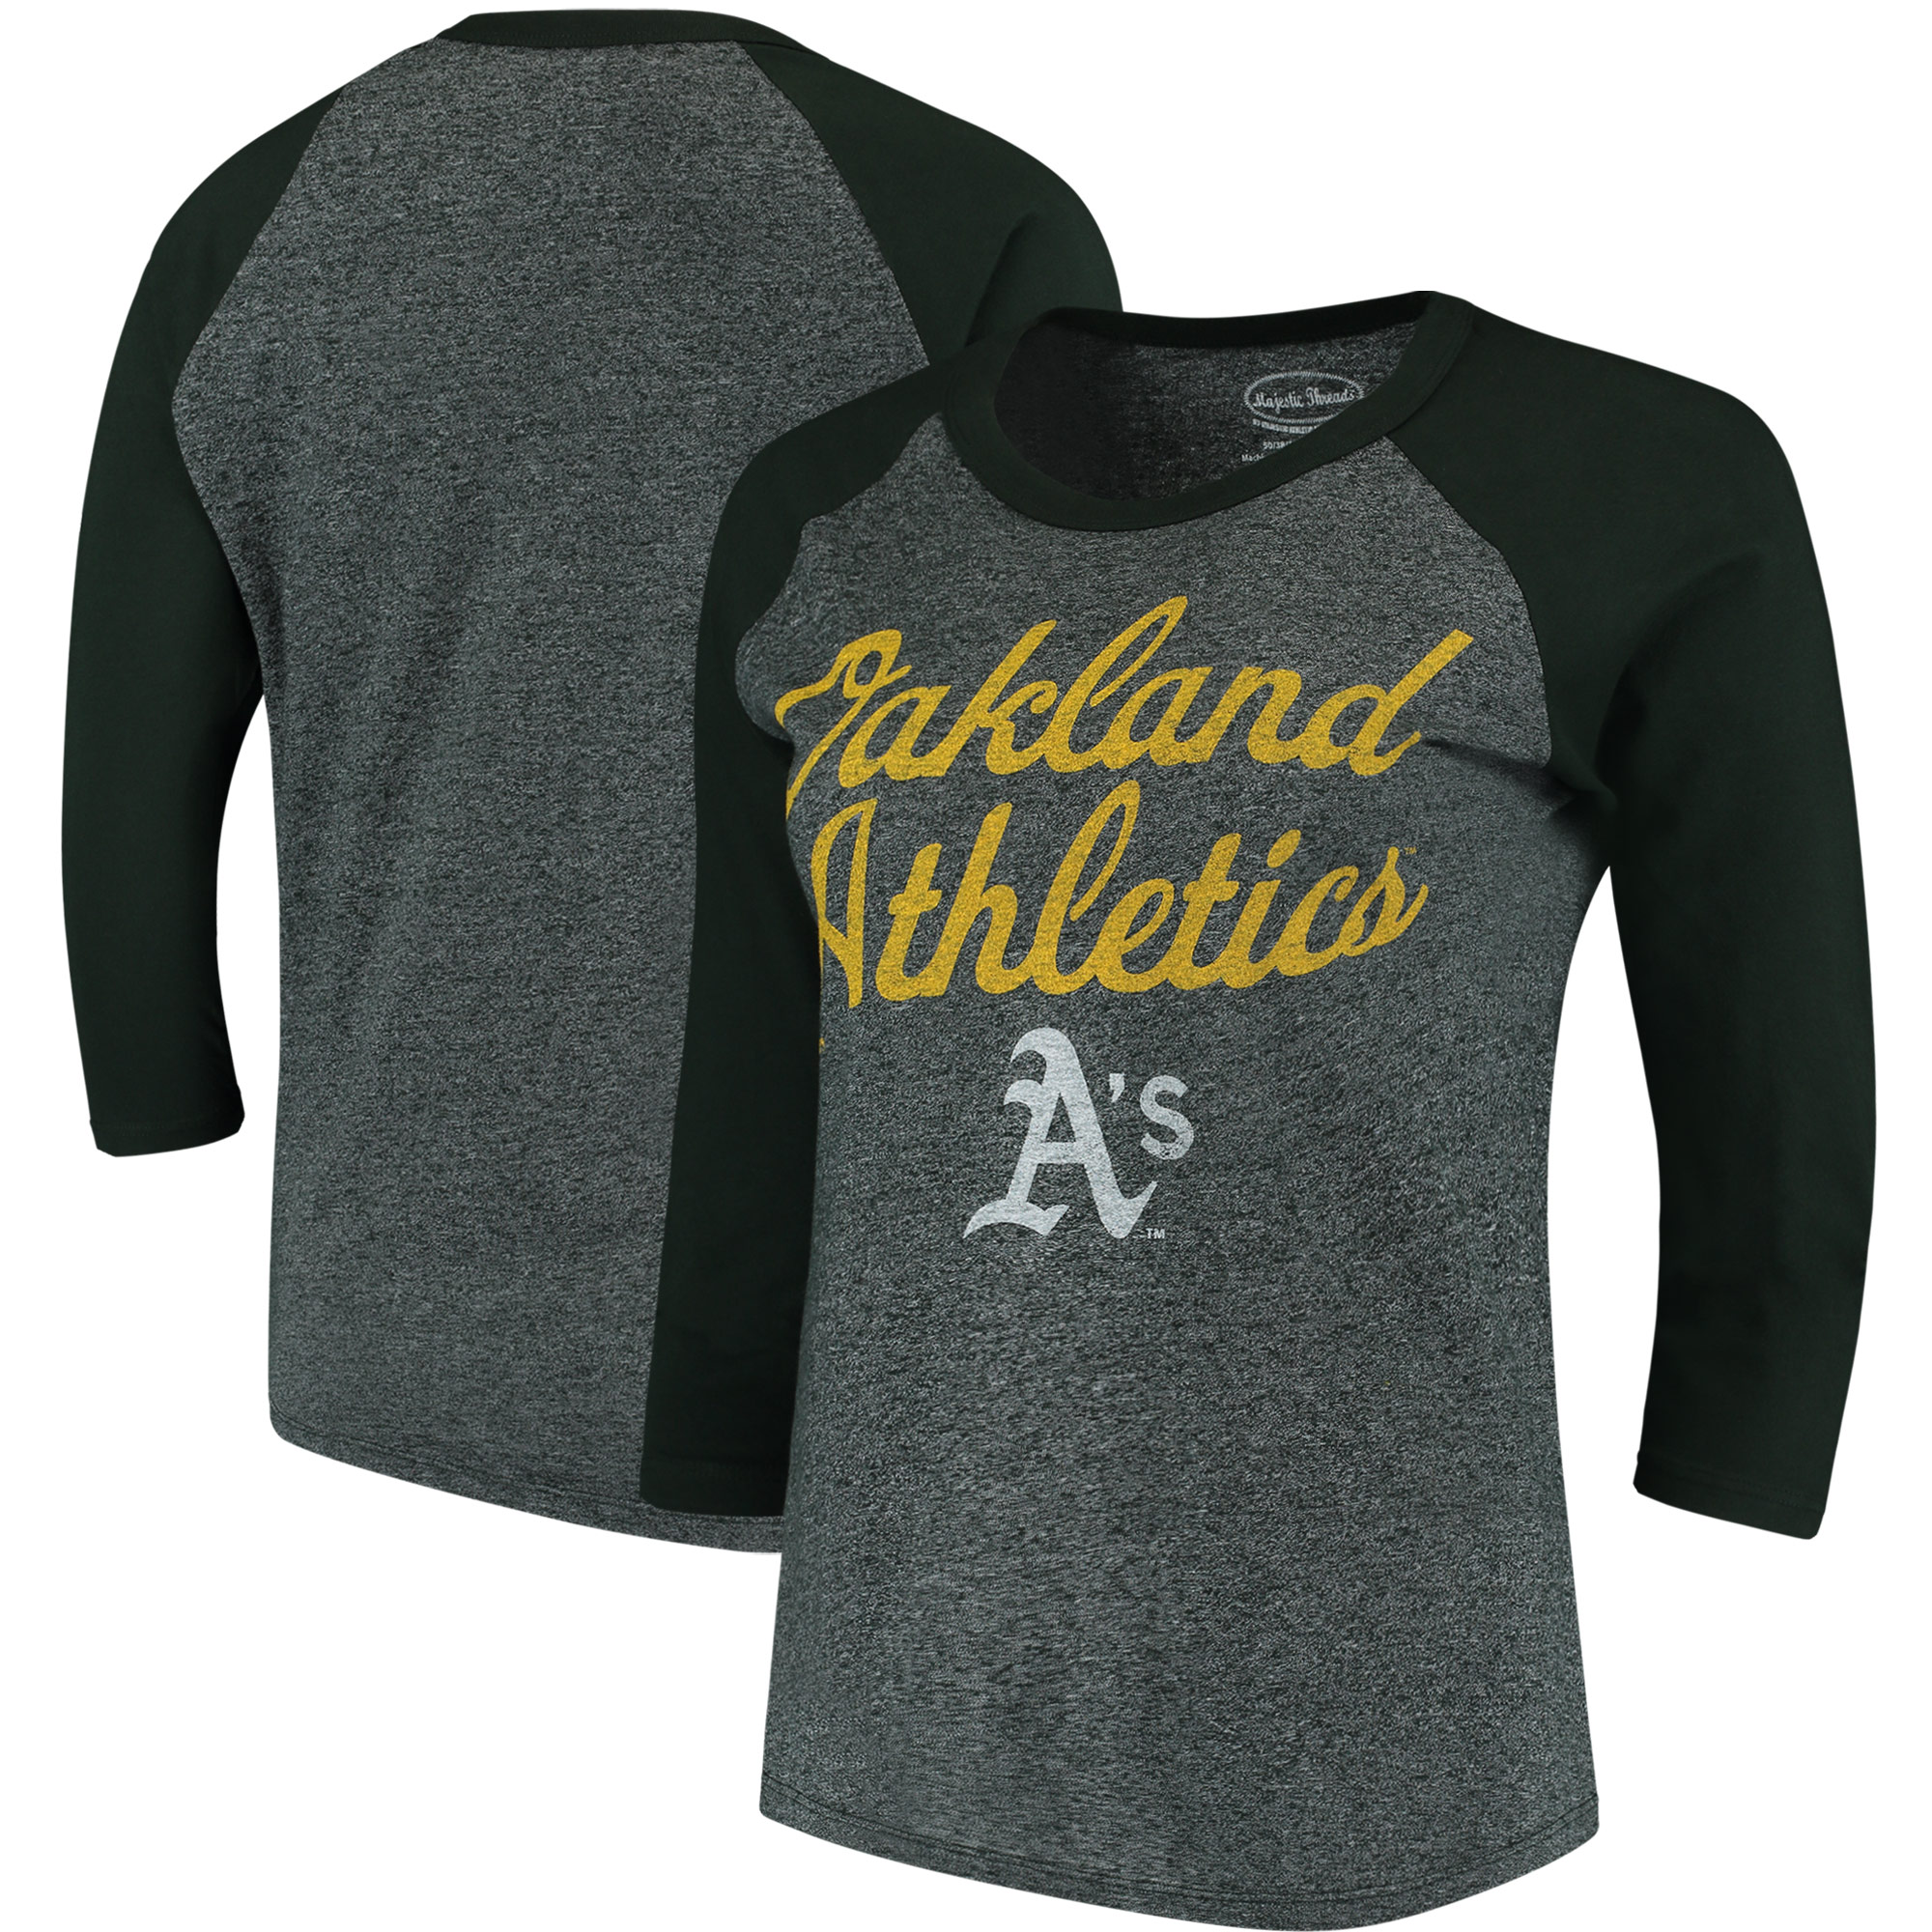 Oakland Athletics Majestic Threads Women's 3/4-Sleeve Raglan T-Shirt - Green